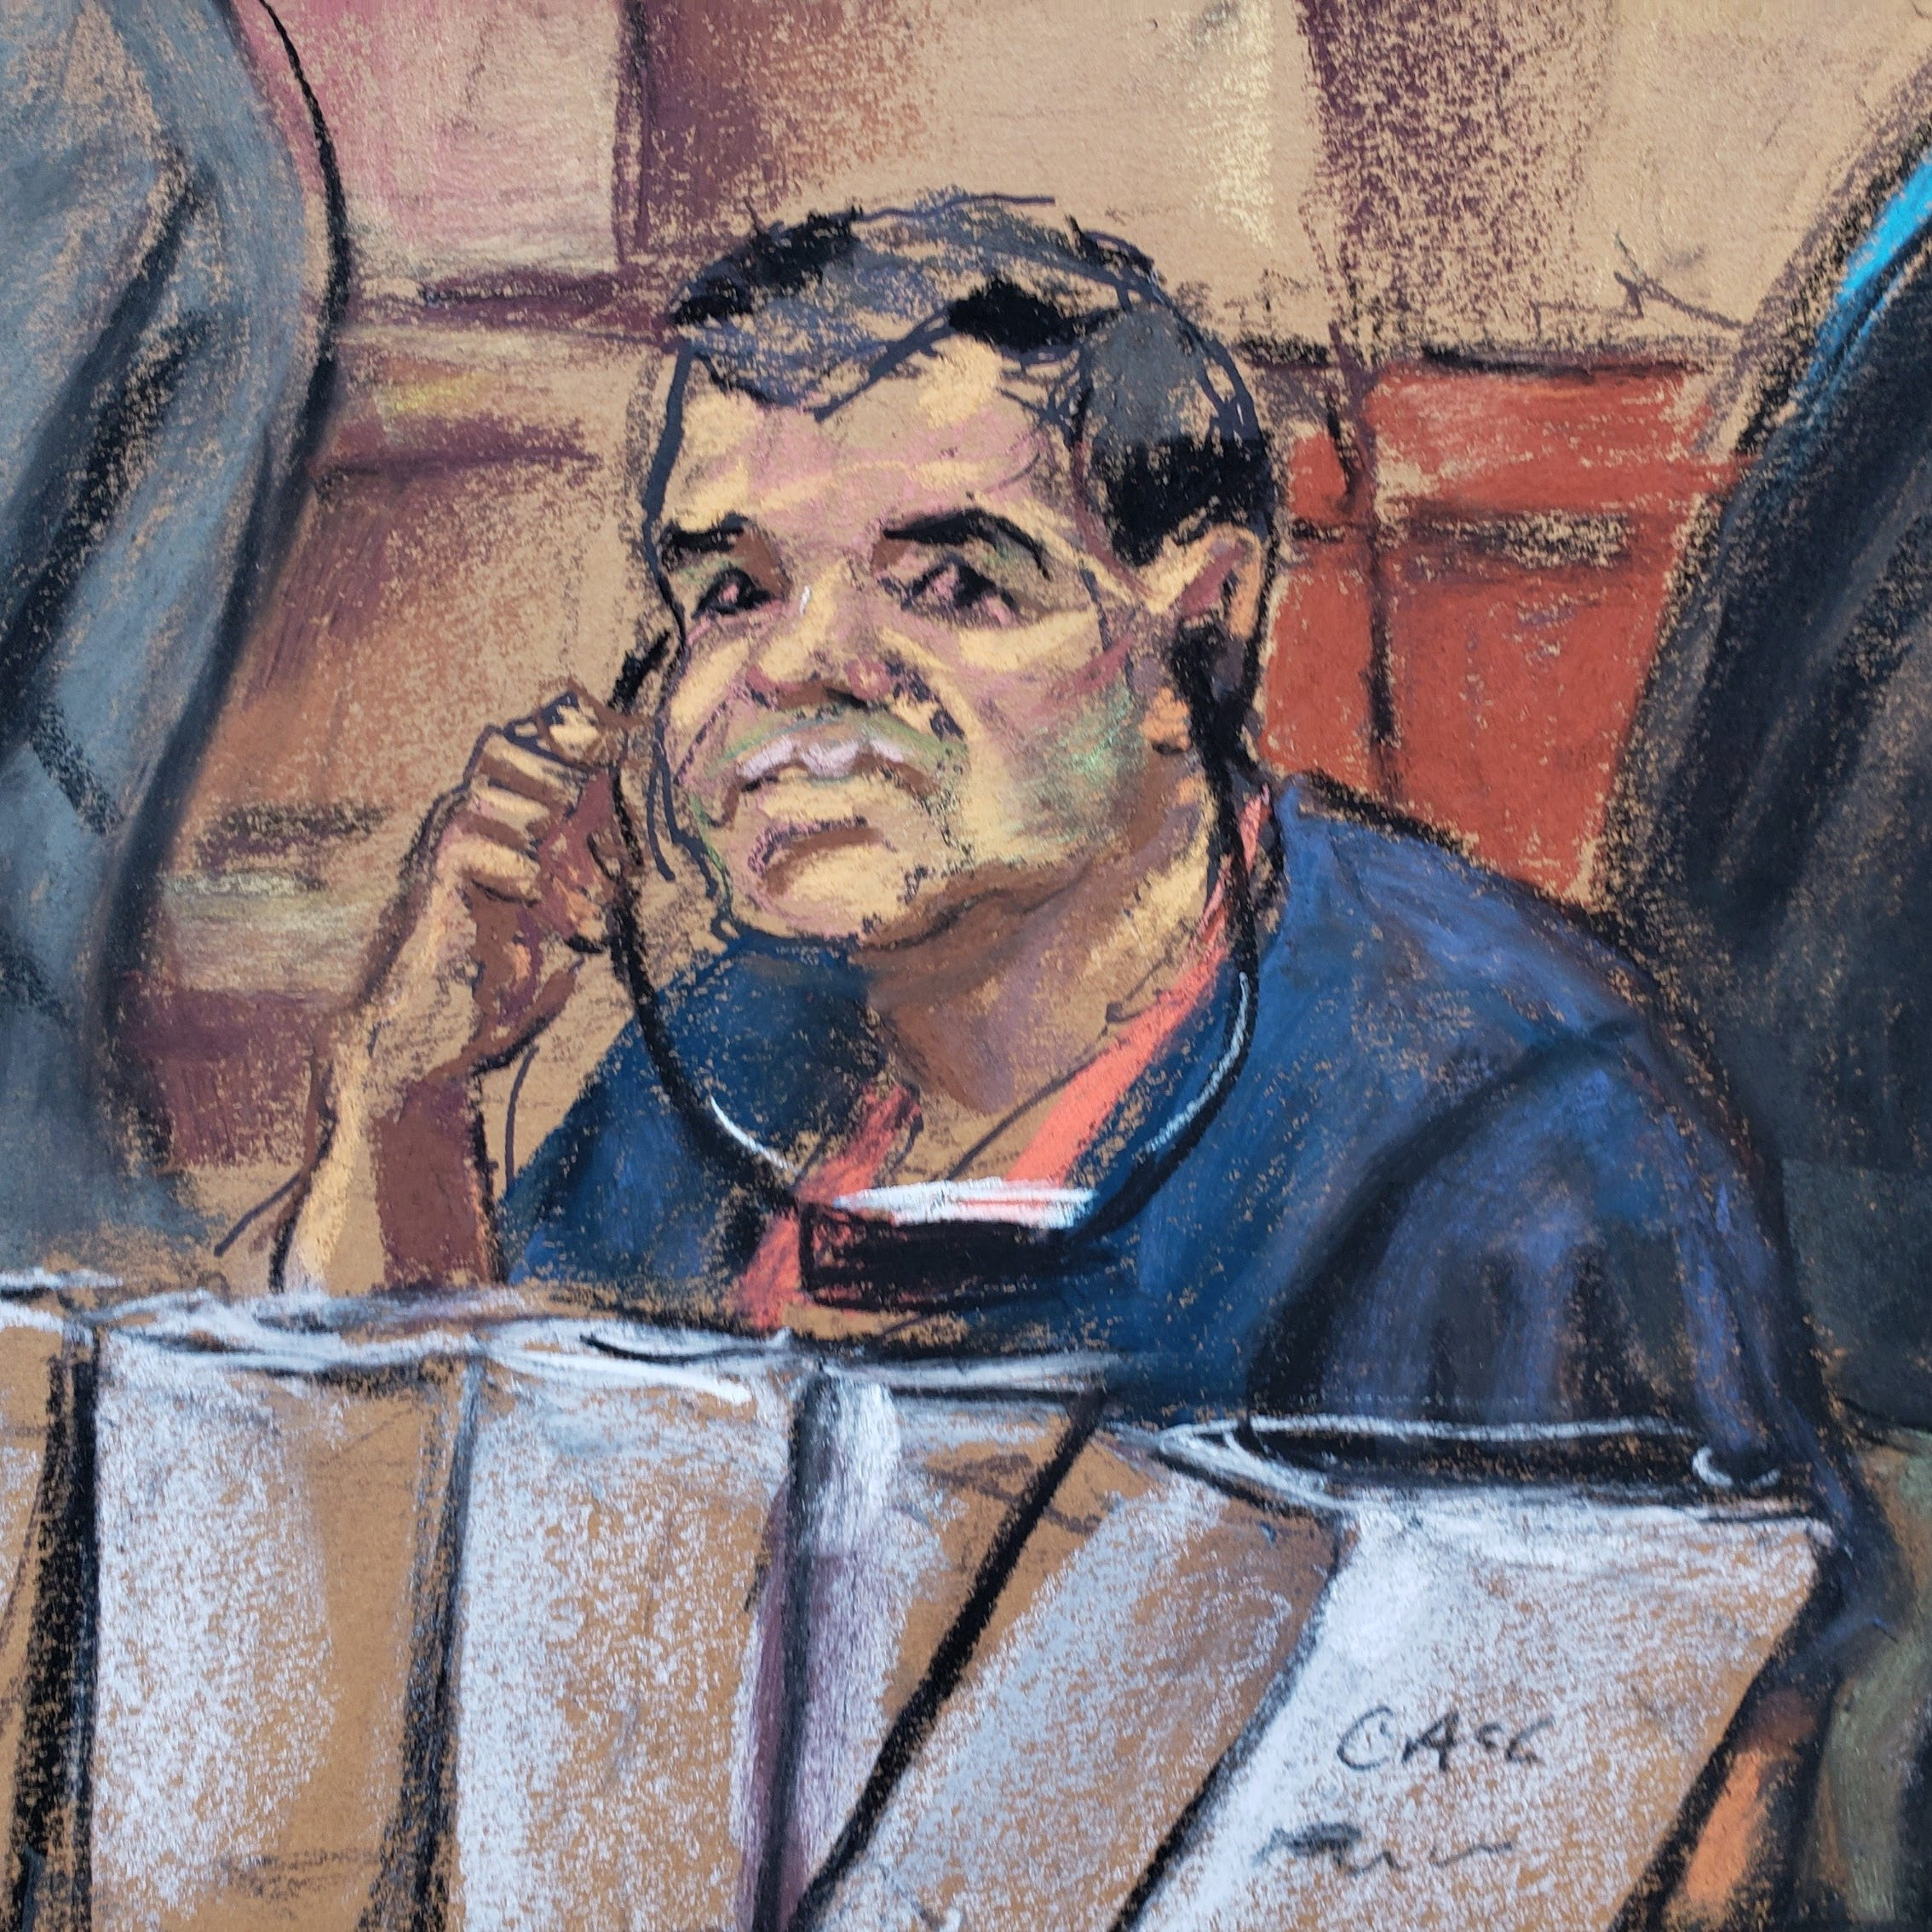 Joaquin El Chapo Guzmán trial: Judge admonishes defense for blaming Peña Nieto